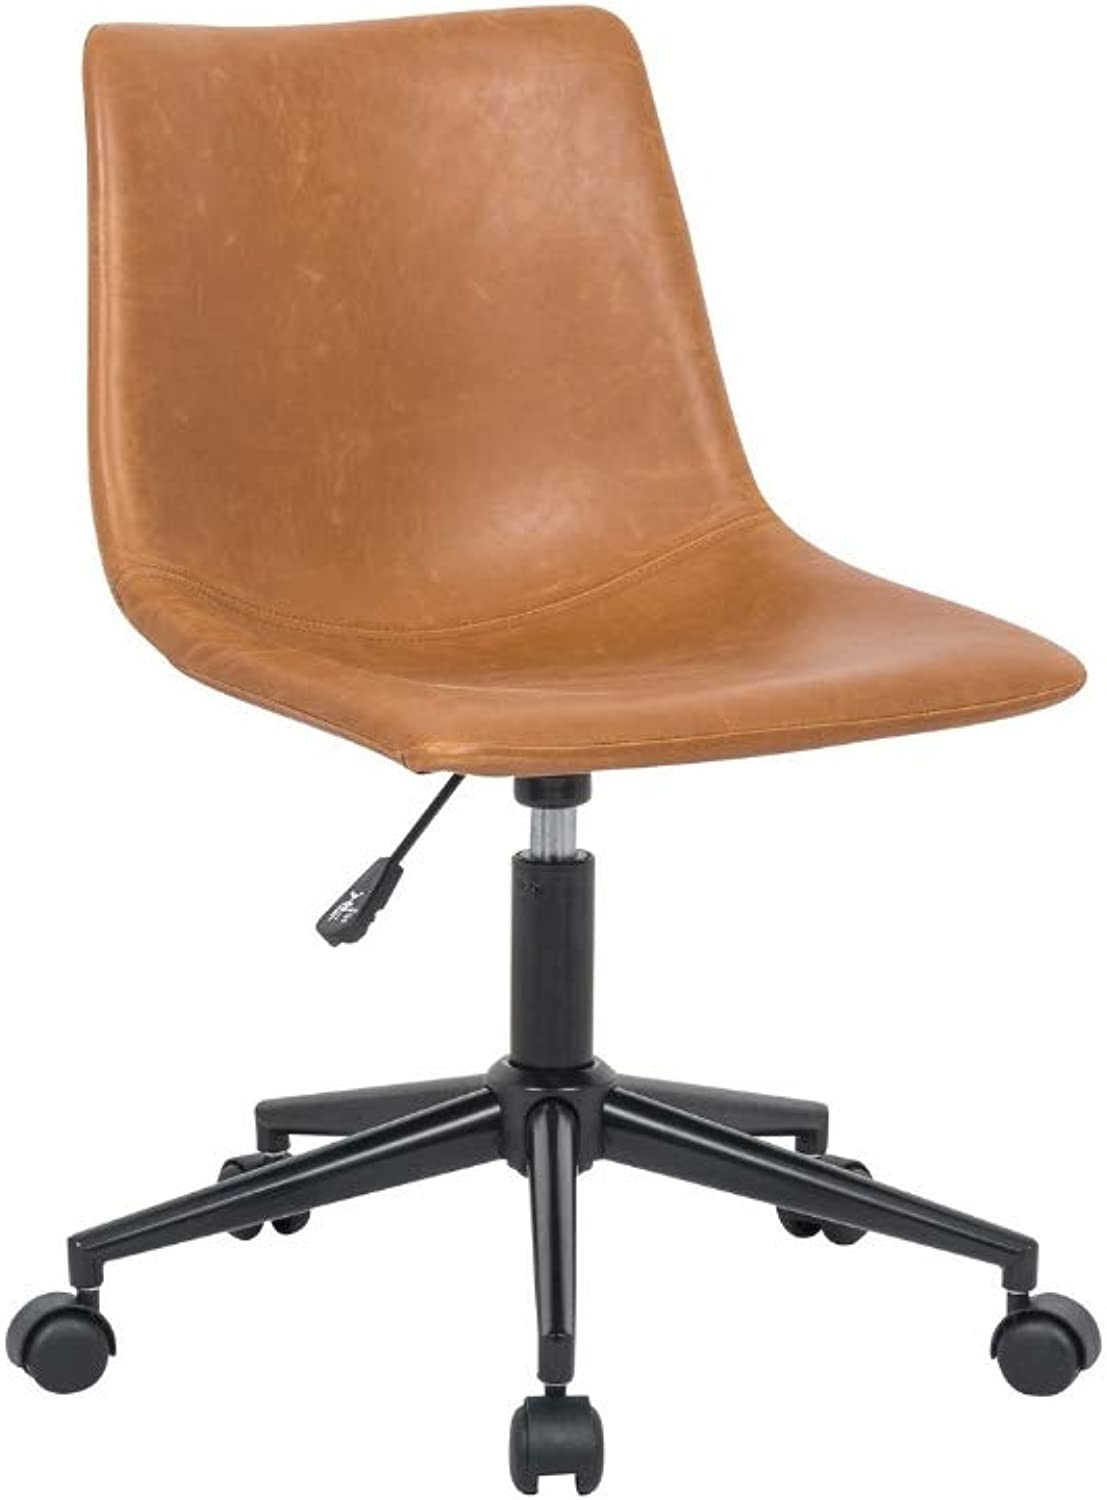 silver Import Pat Office Chair in tan, Office Chair, Eames Style